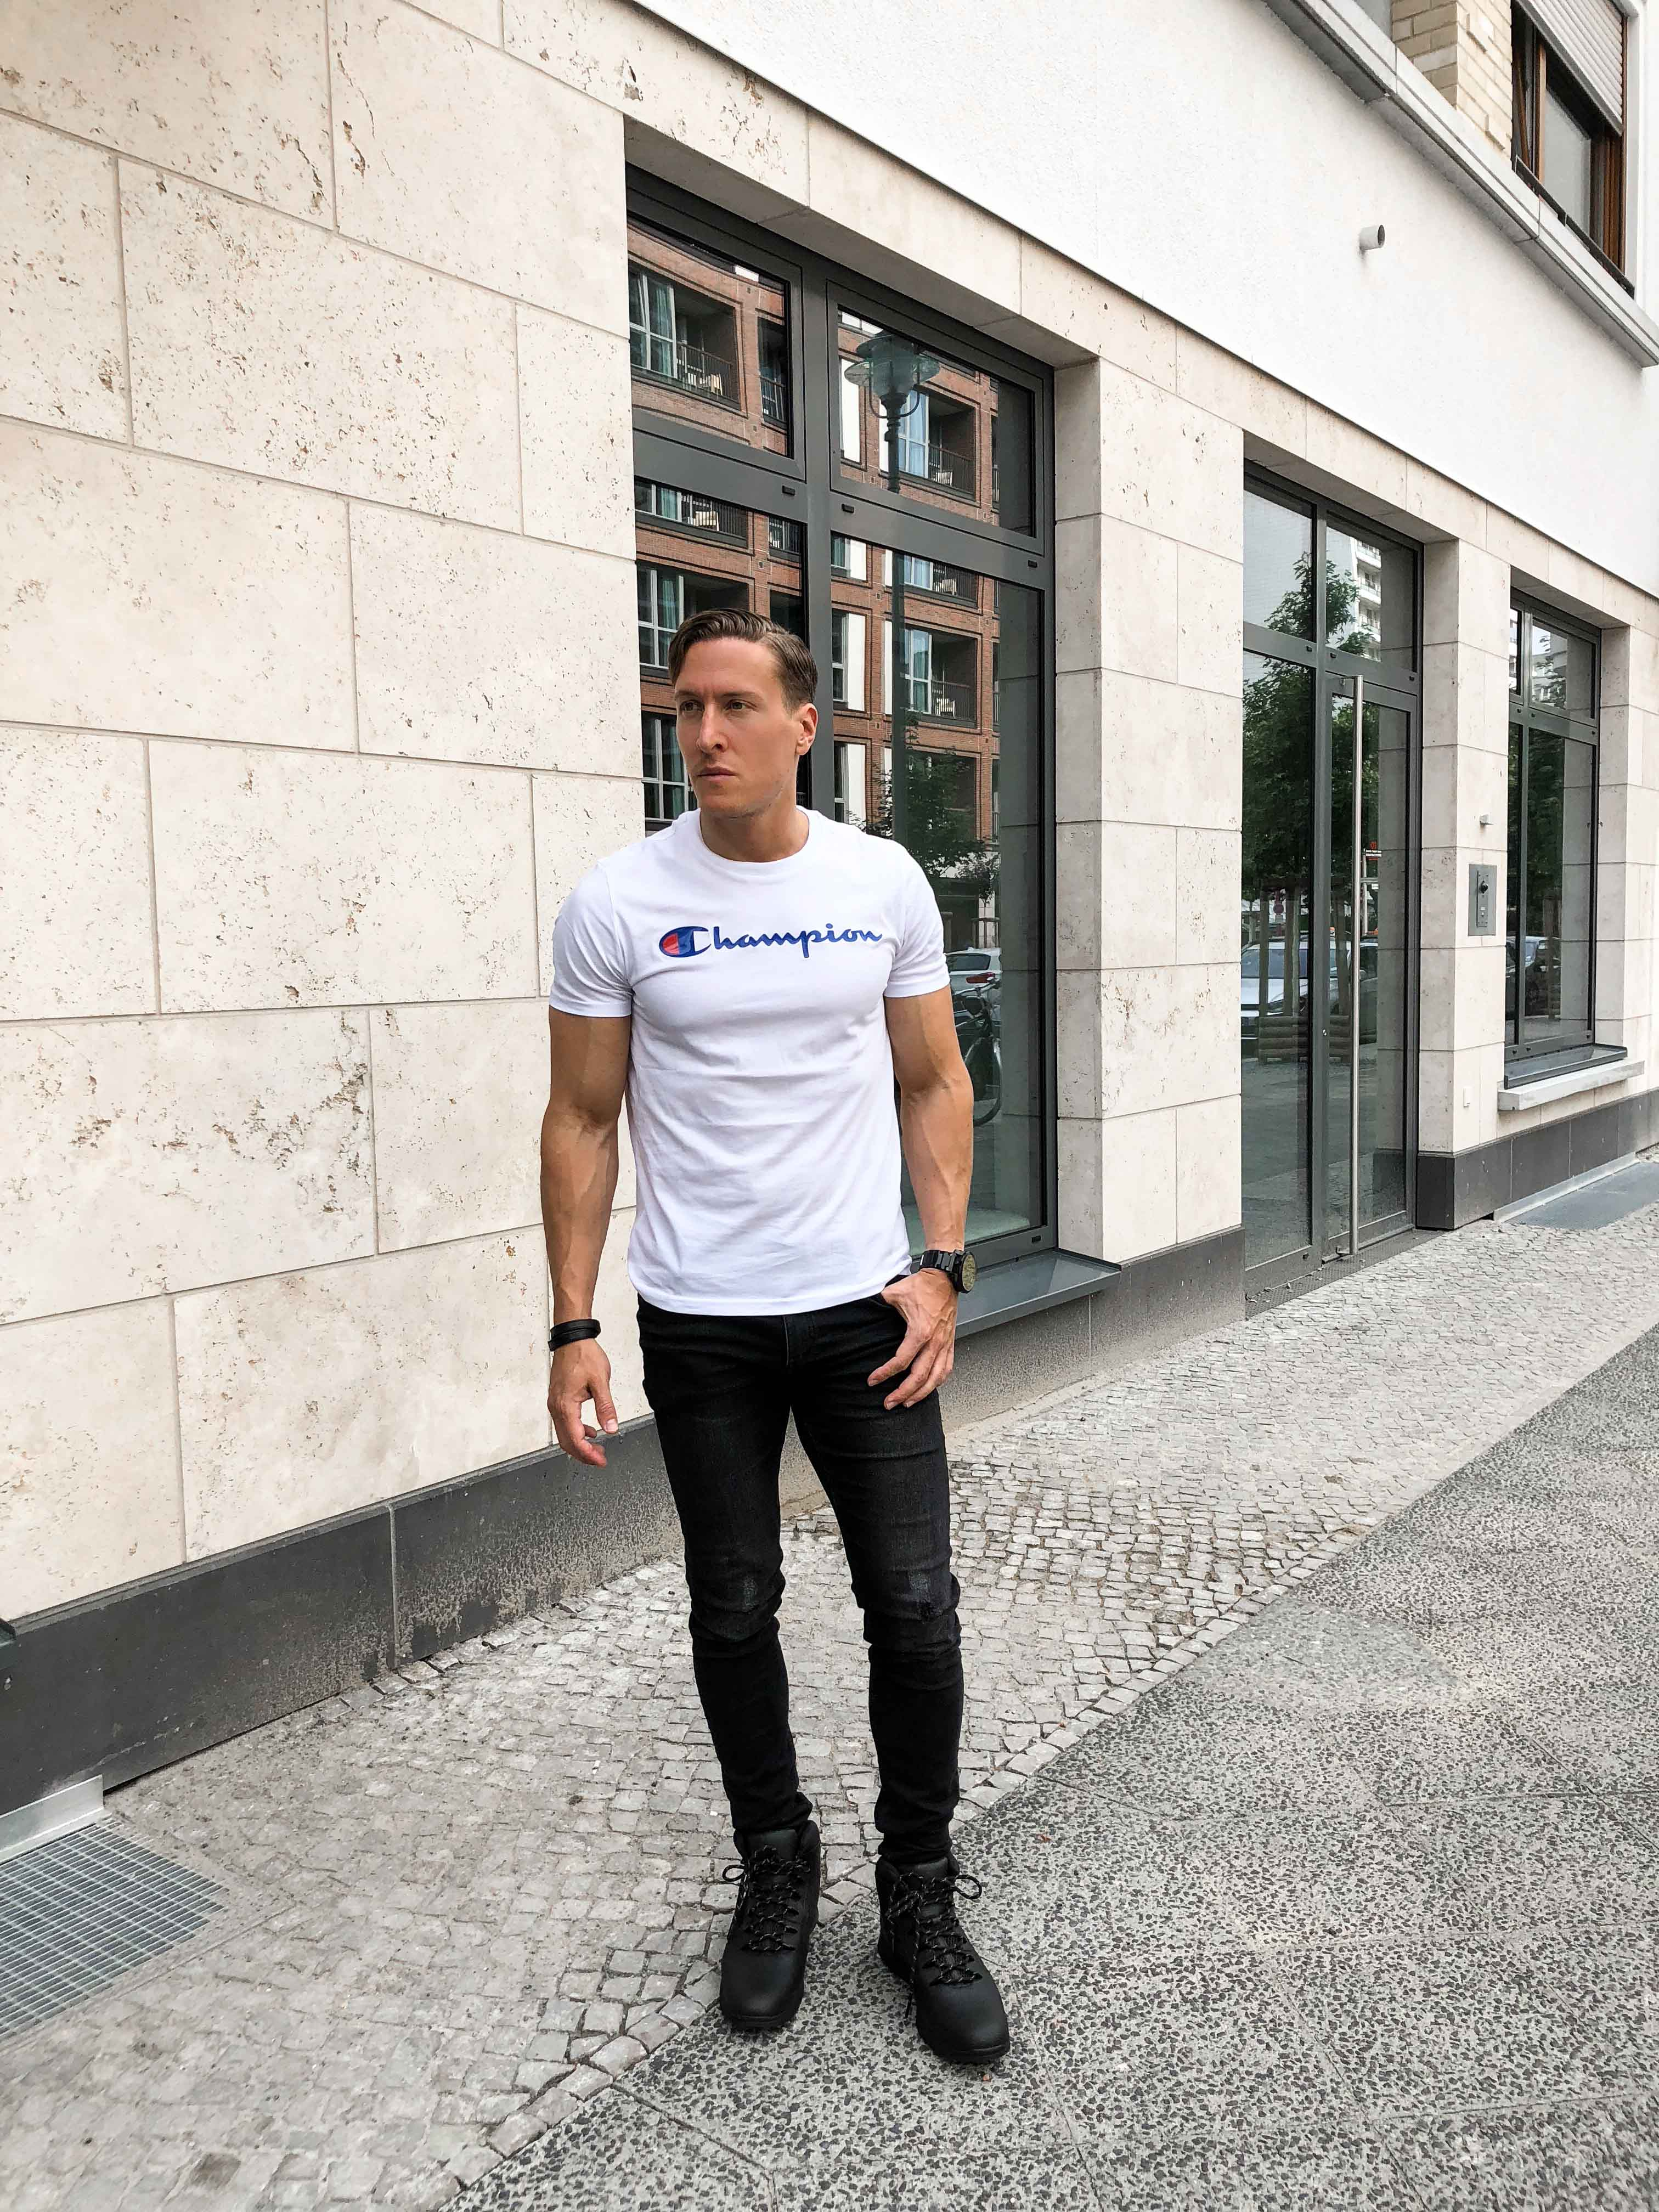 weisses-champion-shirt-sportlicher-look-sommer-berlin-blogger-retro-modeblog-timberland-helcor-boots-outfit